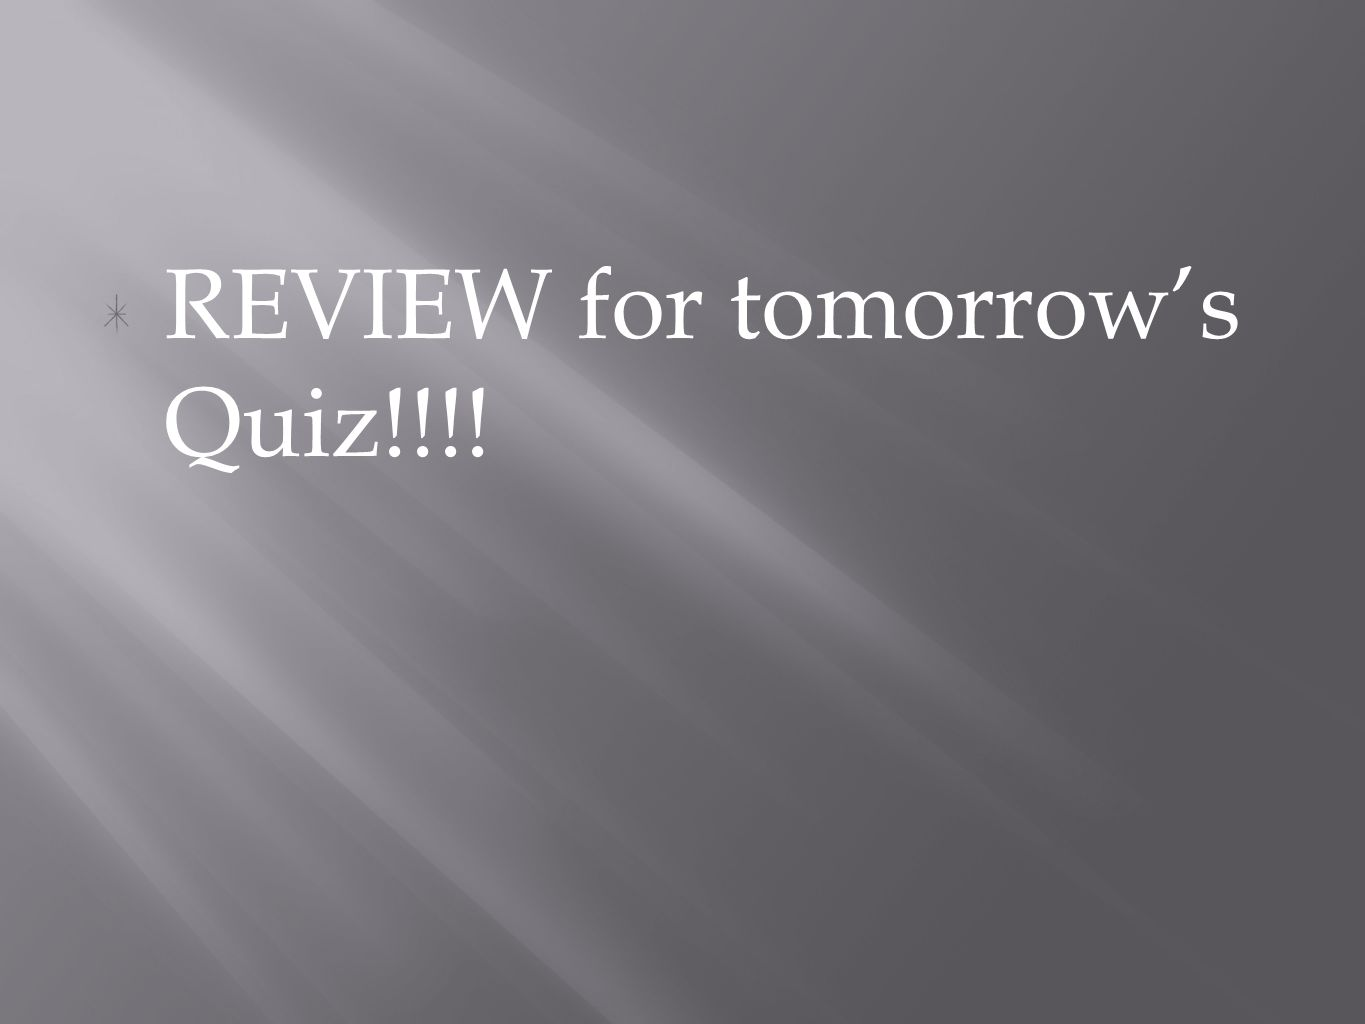 REVIEW for tomorrow's Quiz!!!!